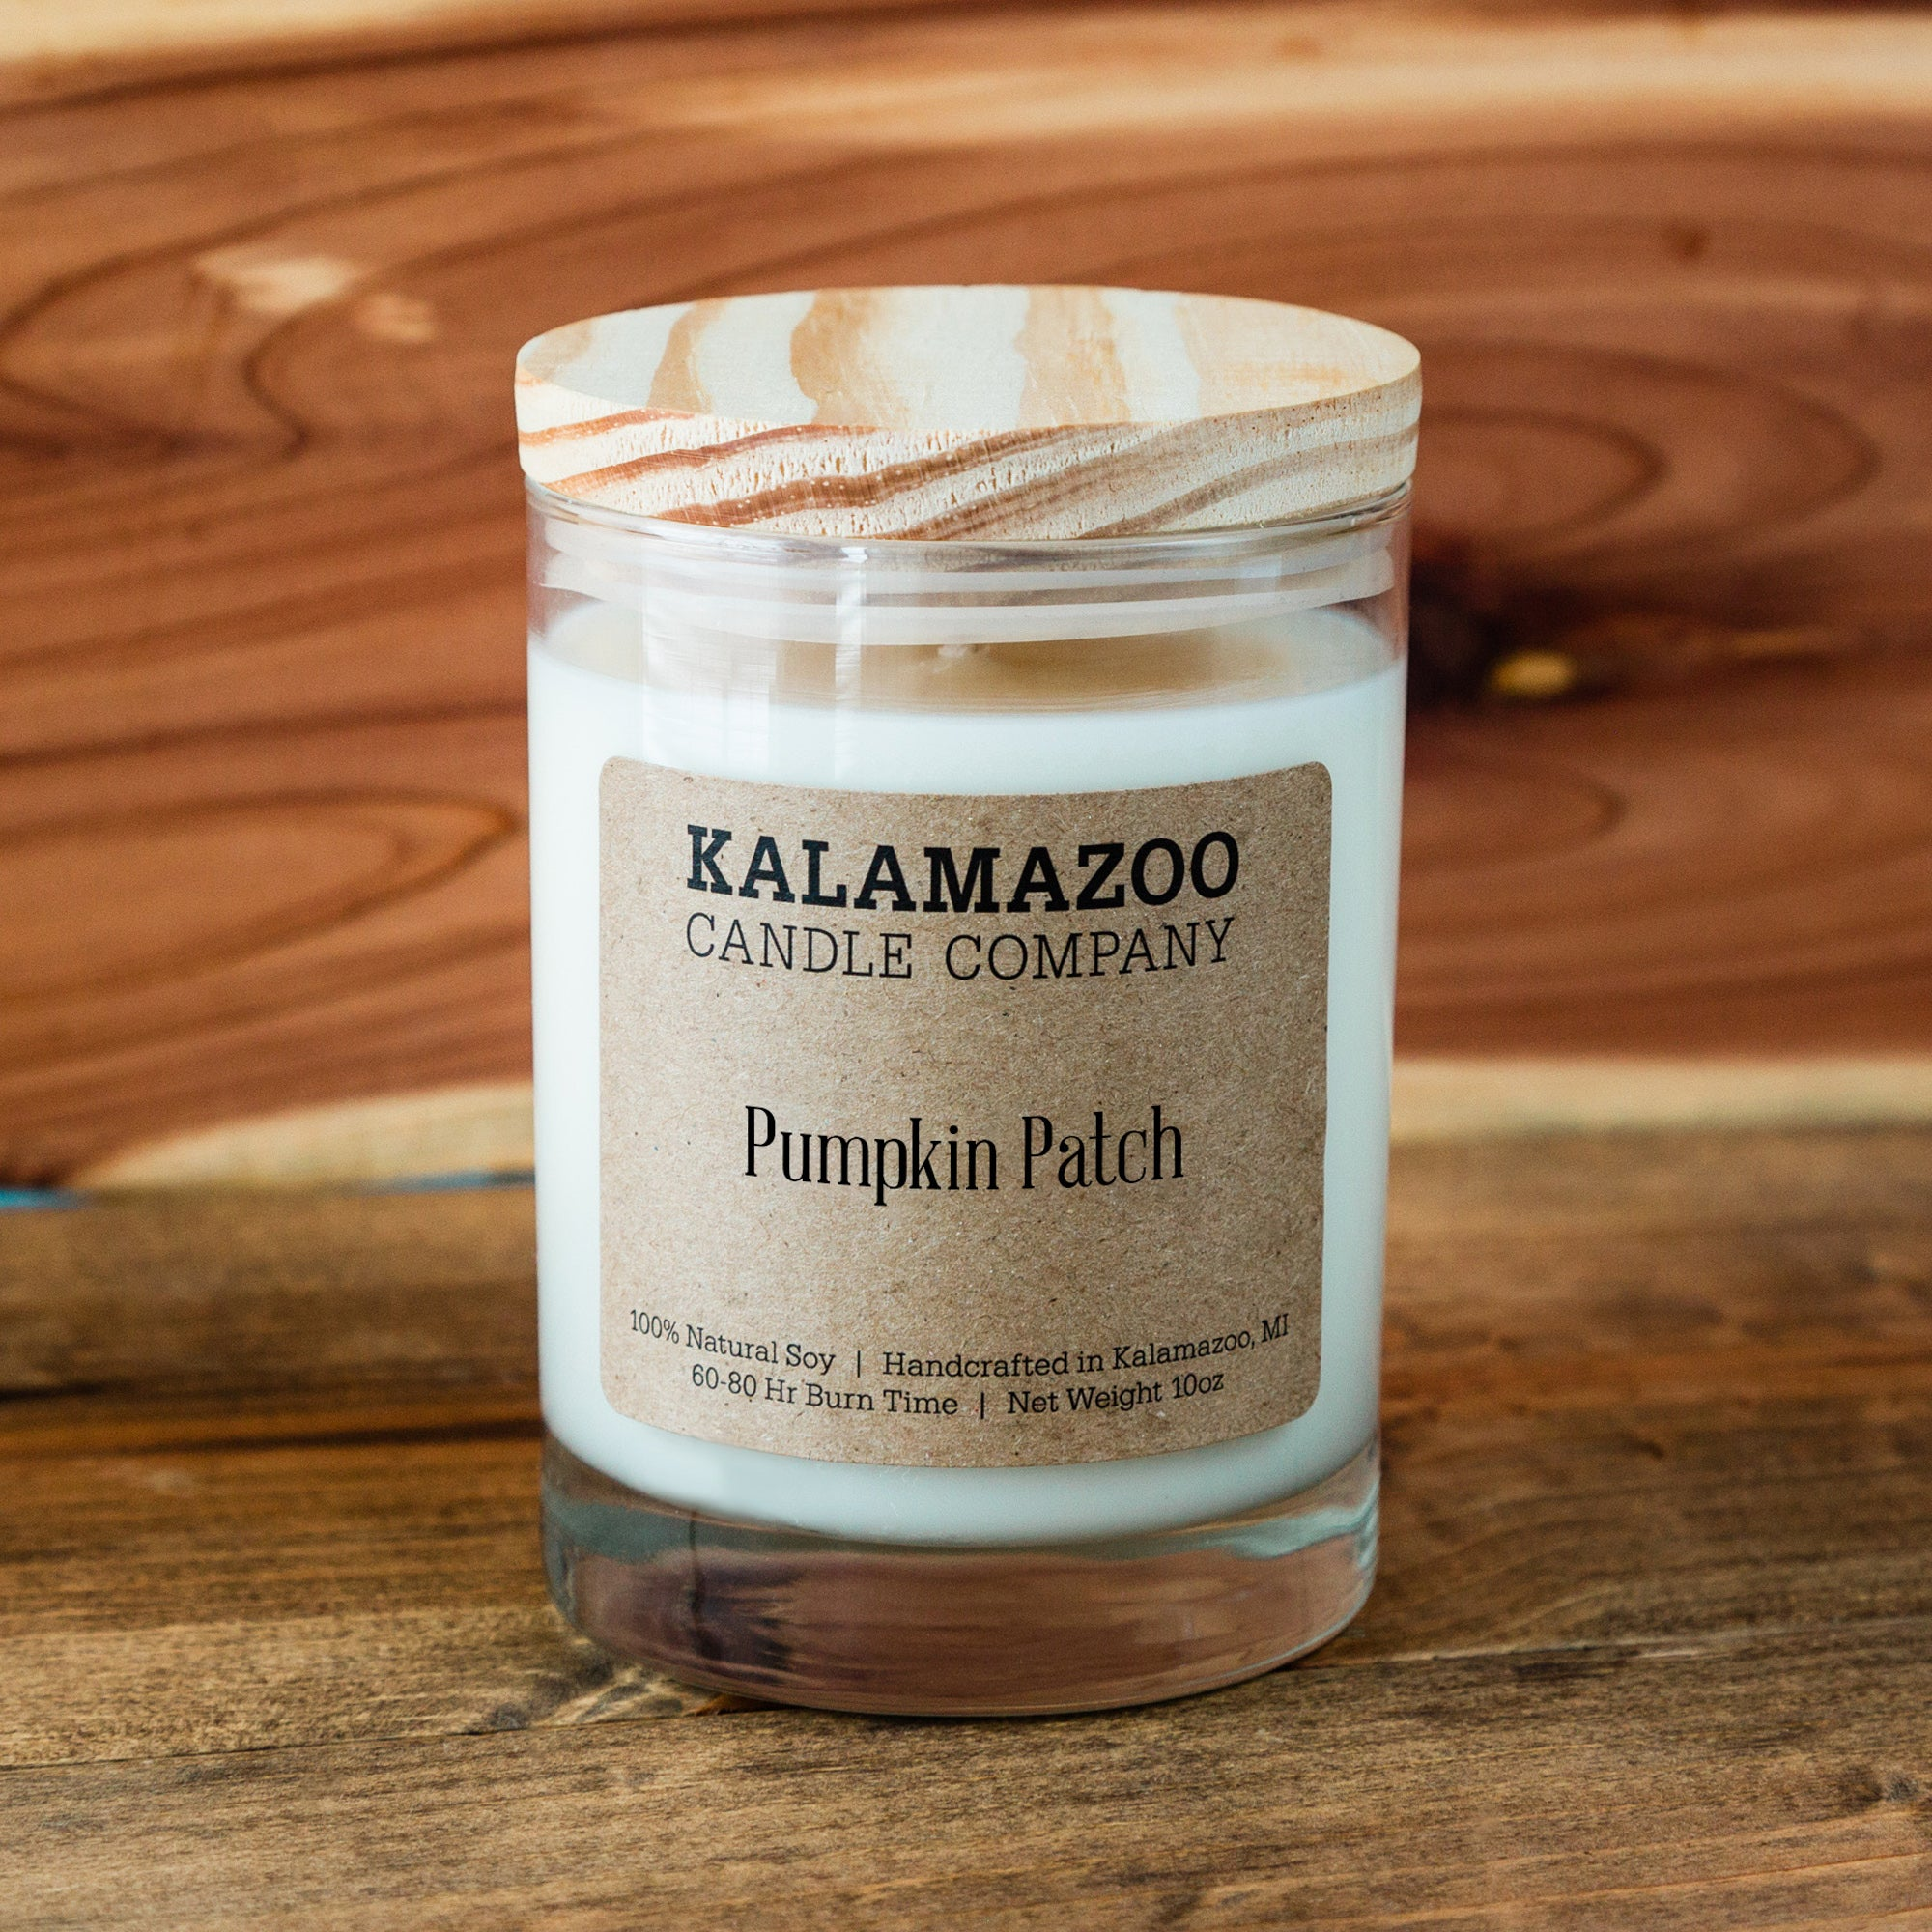 Pumpkin Patch Candle: 10oz Jar